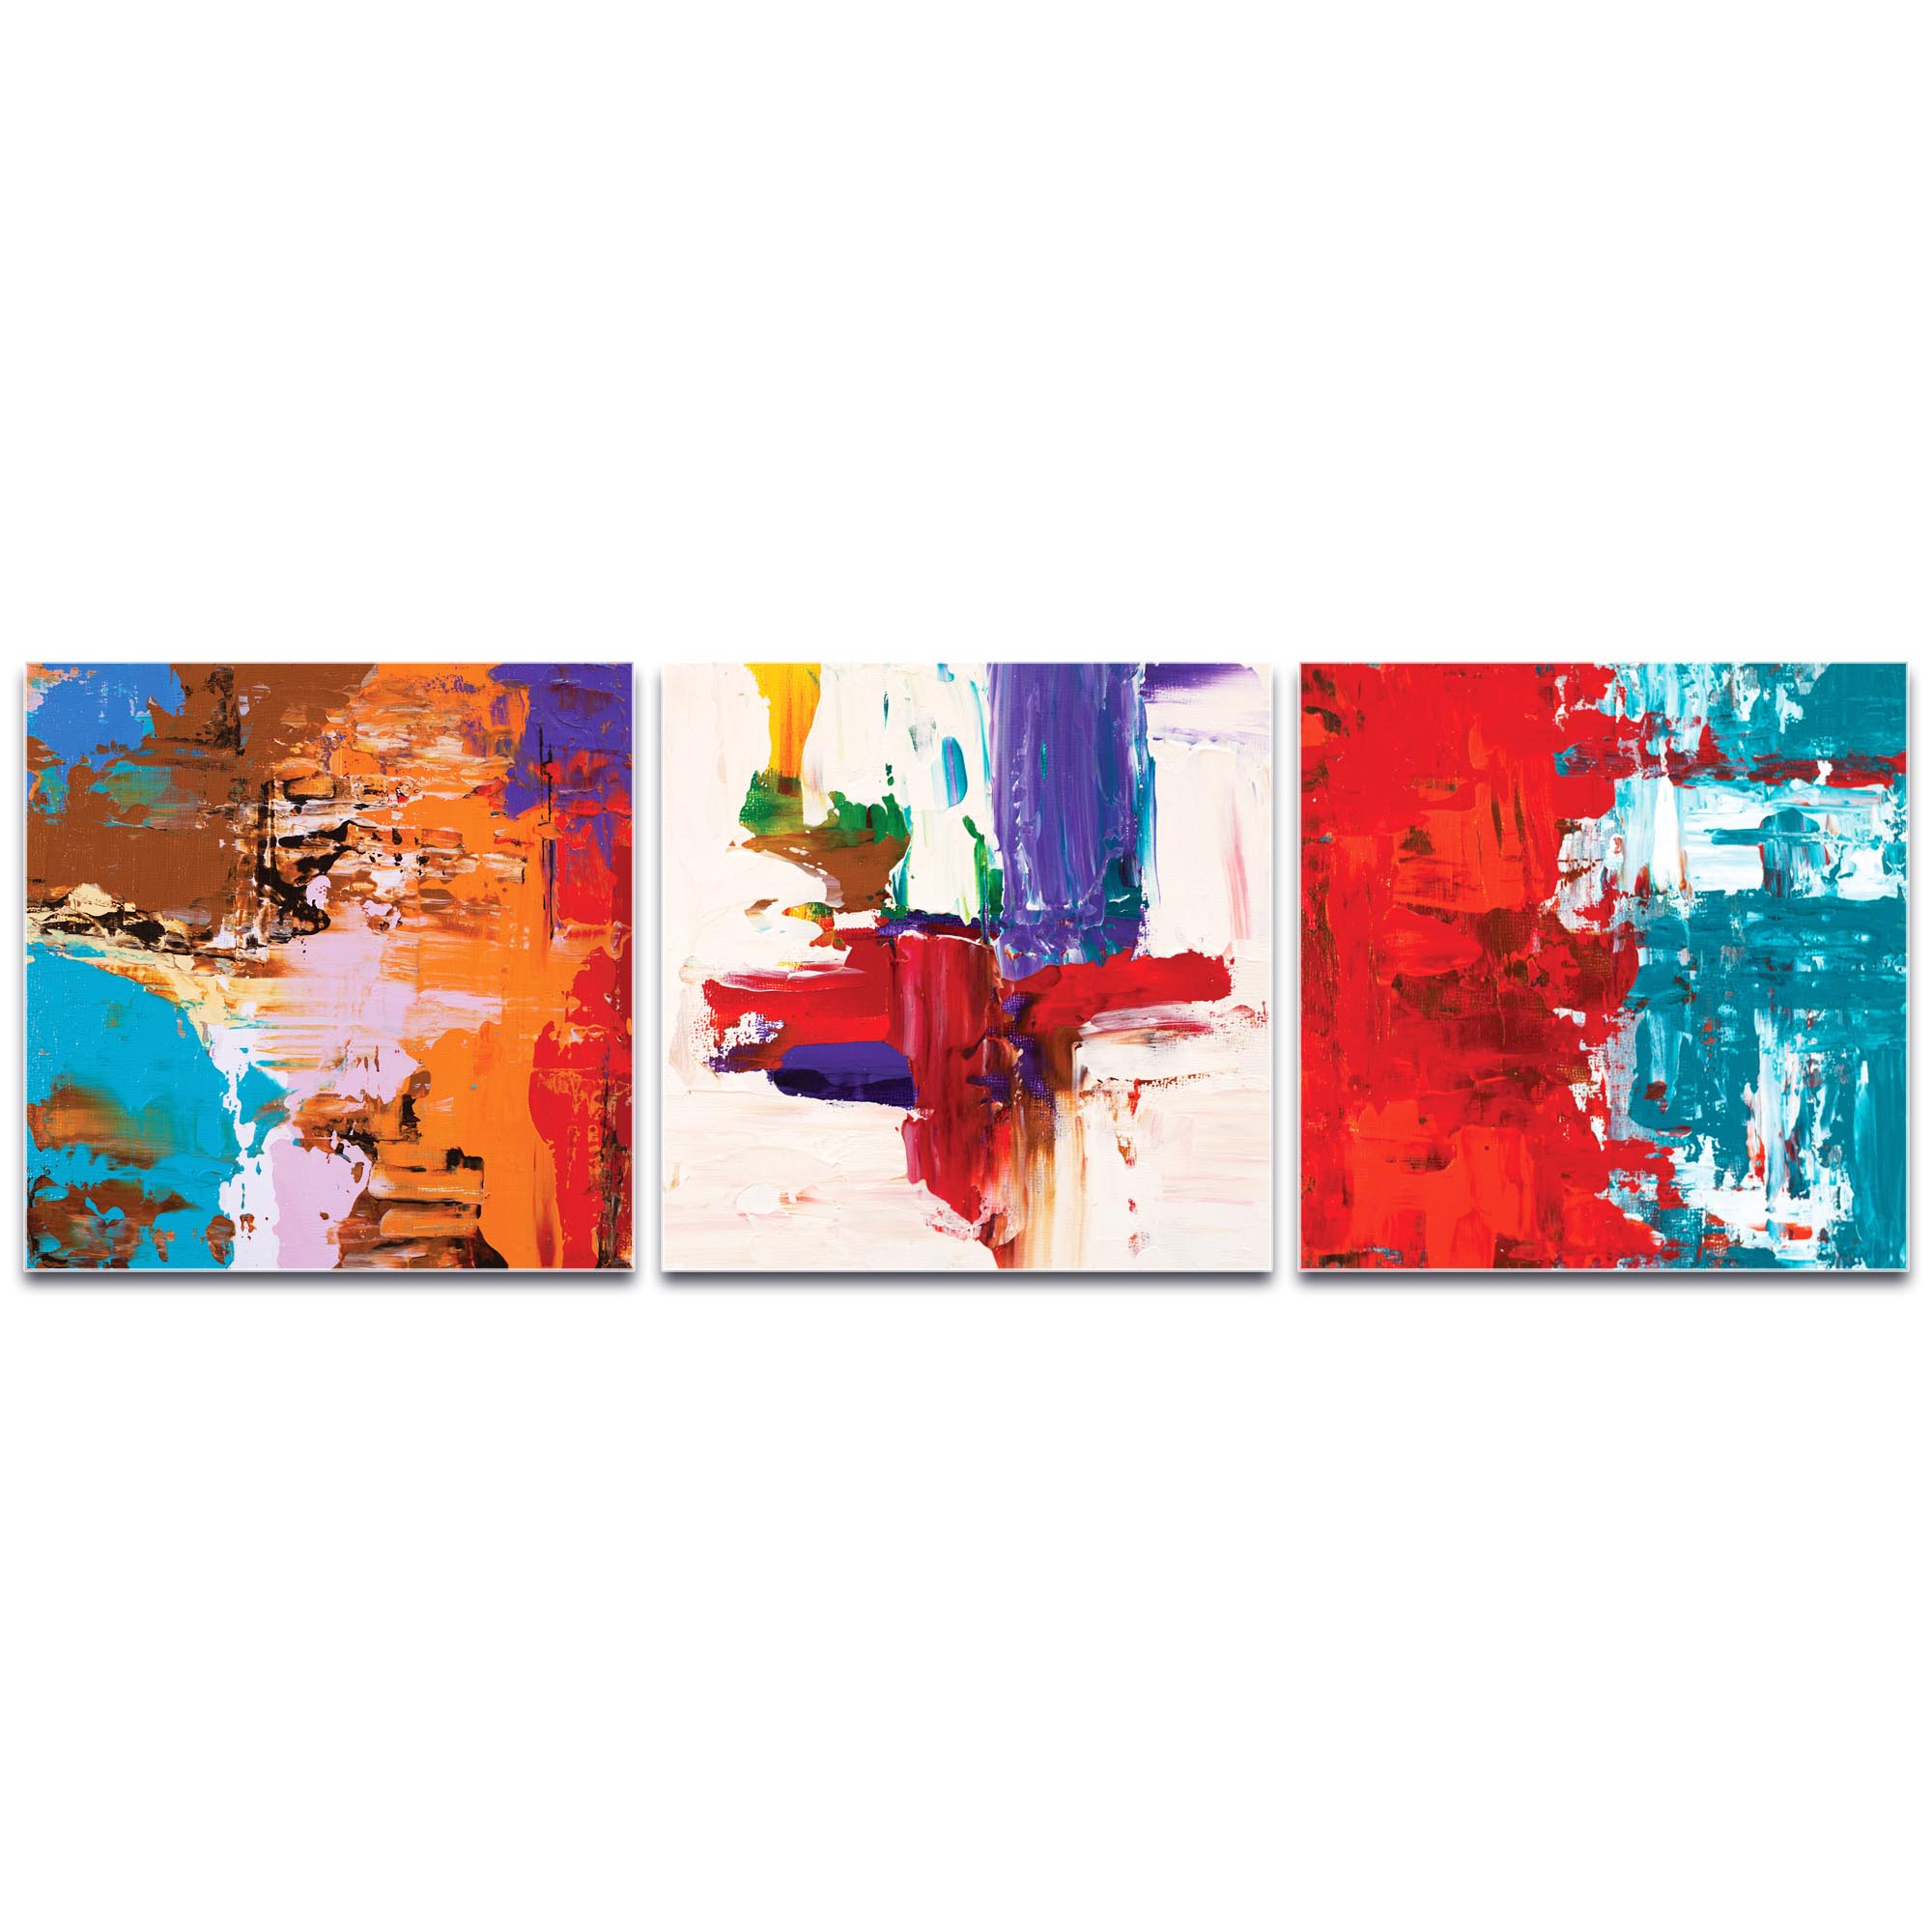 Abstract Wall Art 'Urban Triptych 5 Large' - Urban Decor on Metal or Plexiglass - Image 2